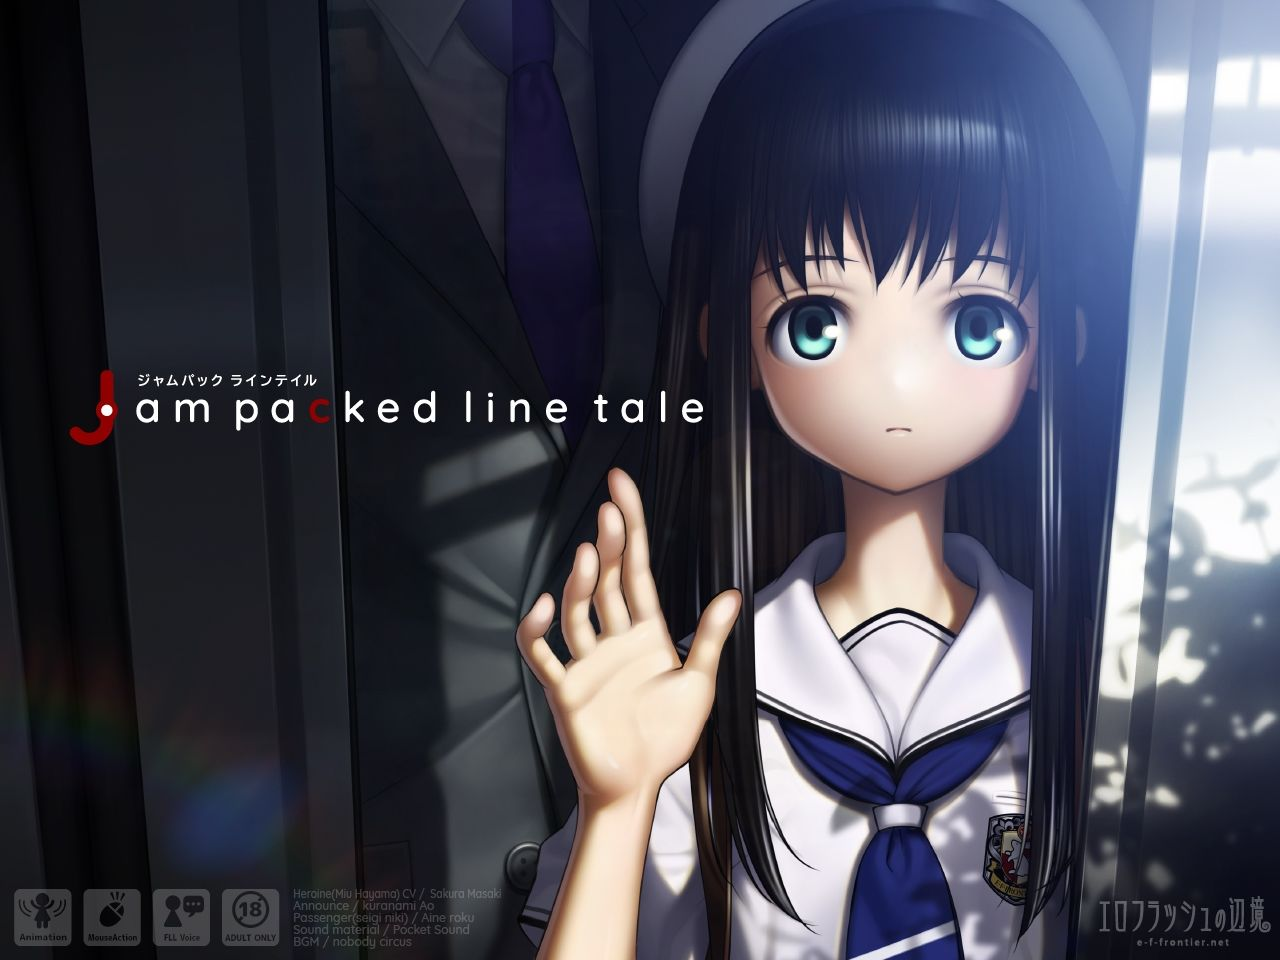 Jam packed line tale 画像